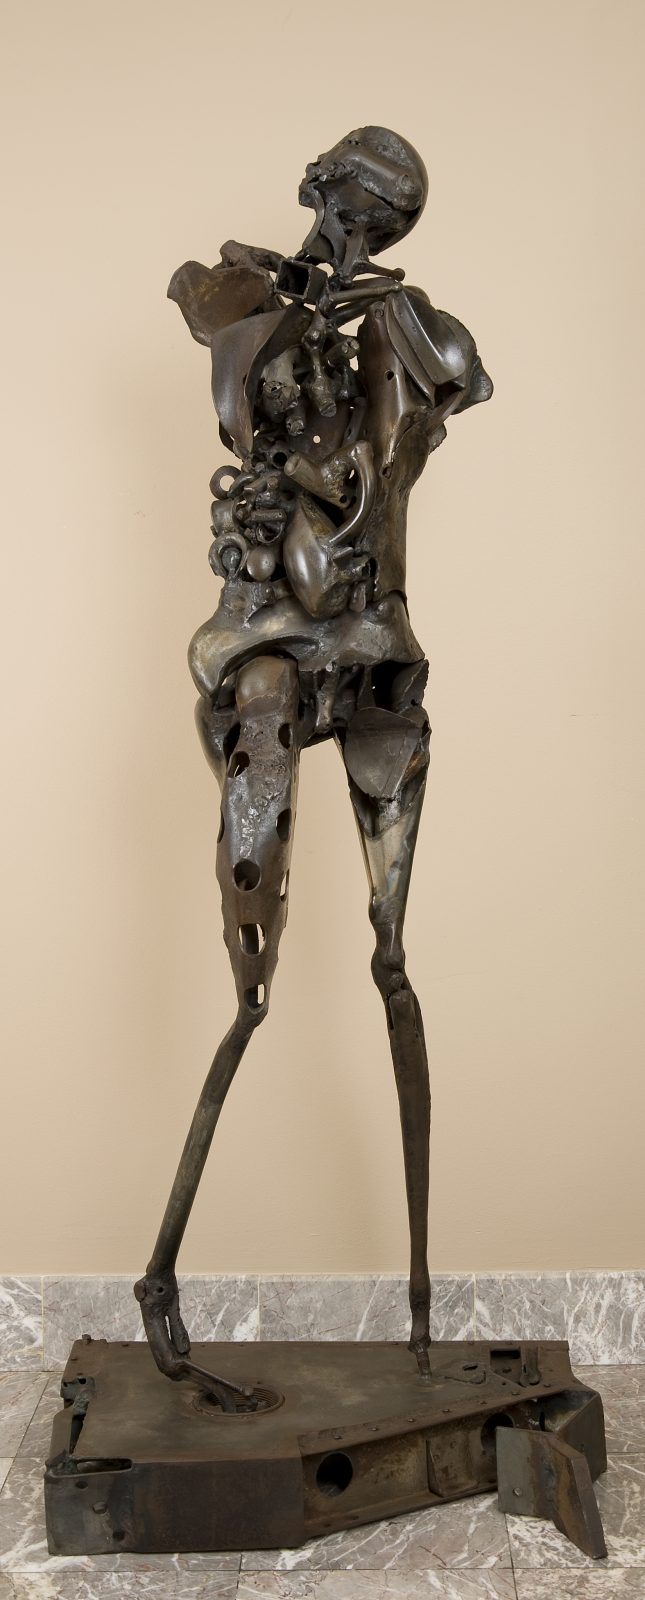 This sculpture by Richard Hunt shows an abstracted human figure